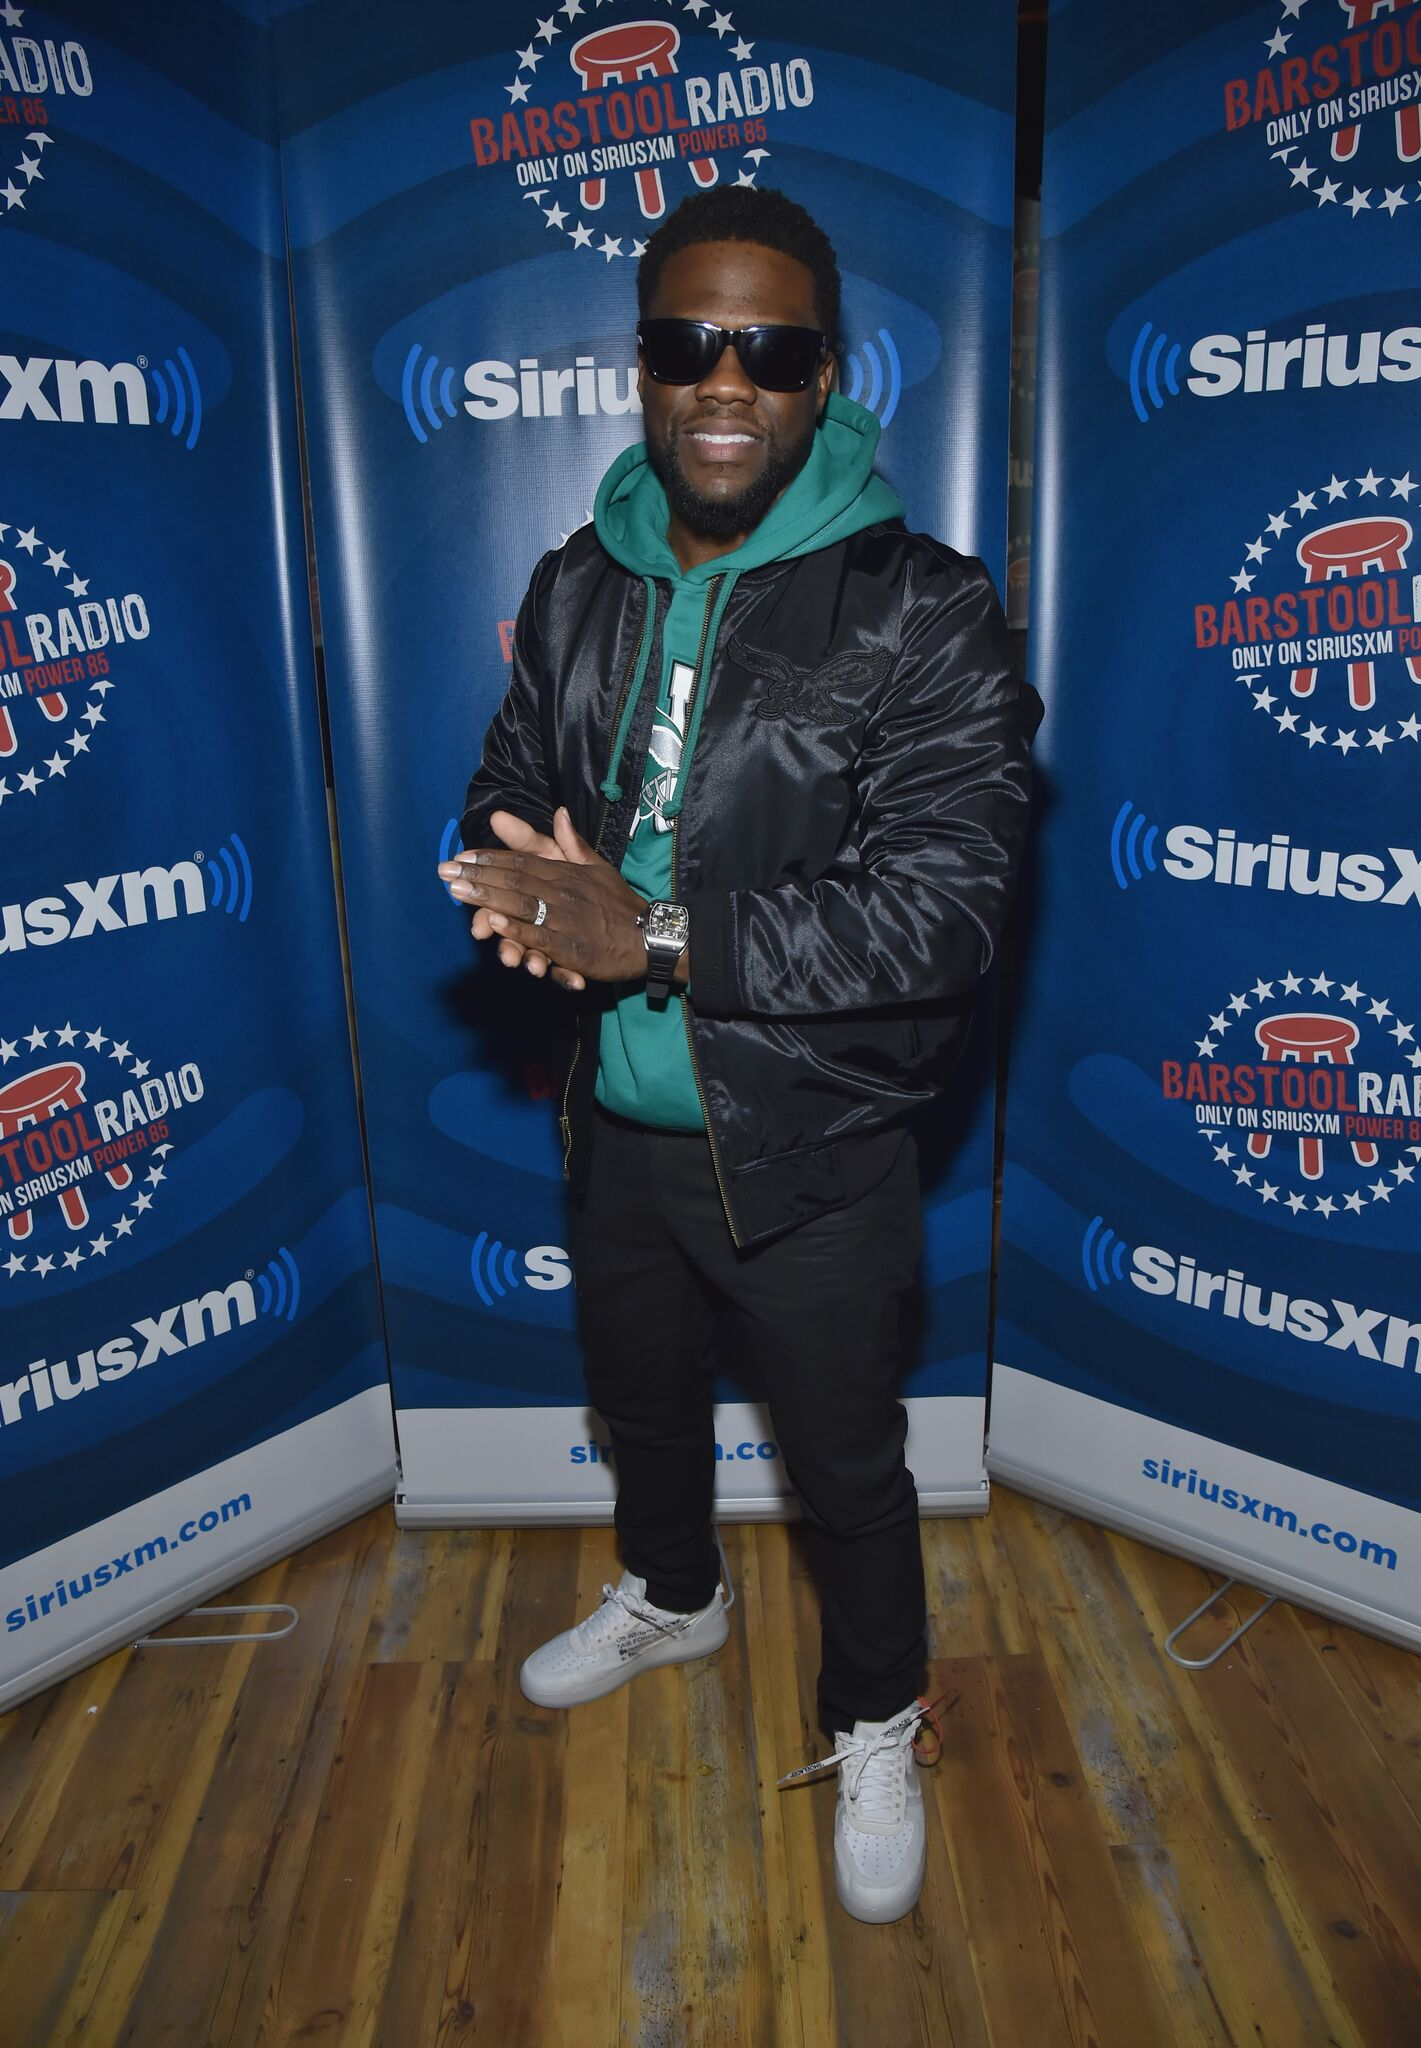 Kevin Hart attends Kevin Hart Live on Barstool Radio on SiriusXM at Super Bowl LII on February 2, 2018 in Minneapolis, Minnesota. l Getty Images